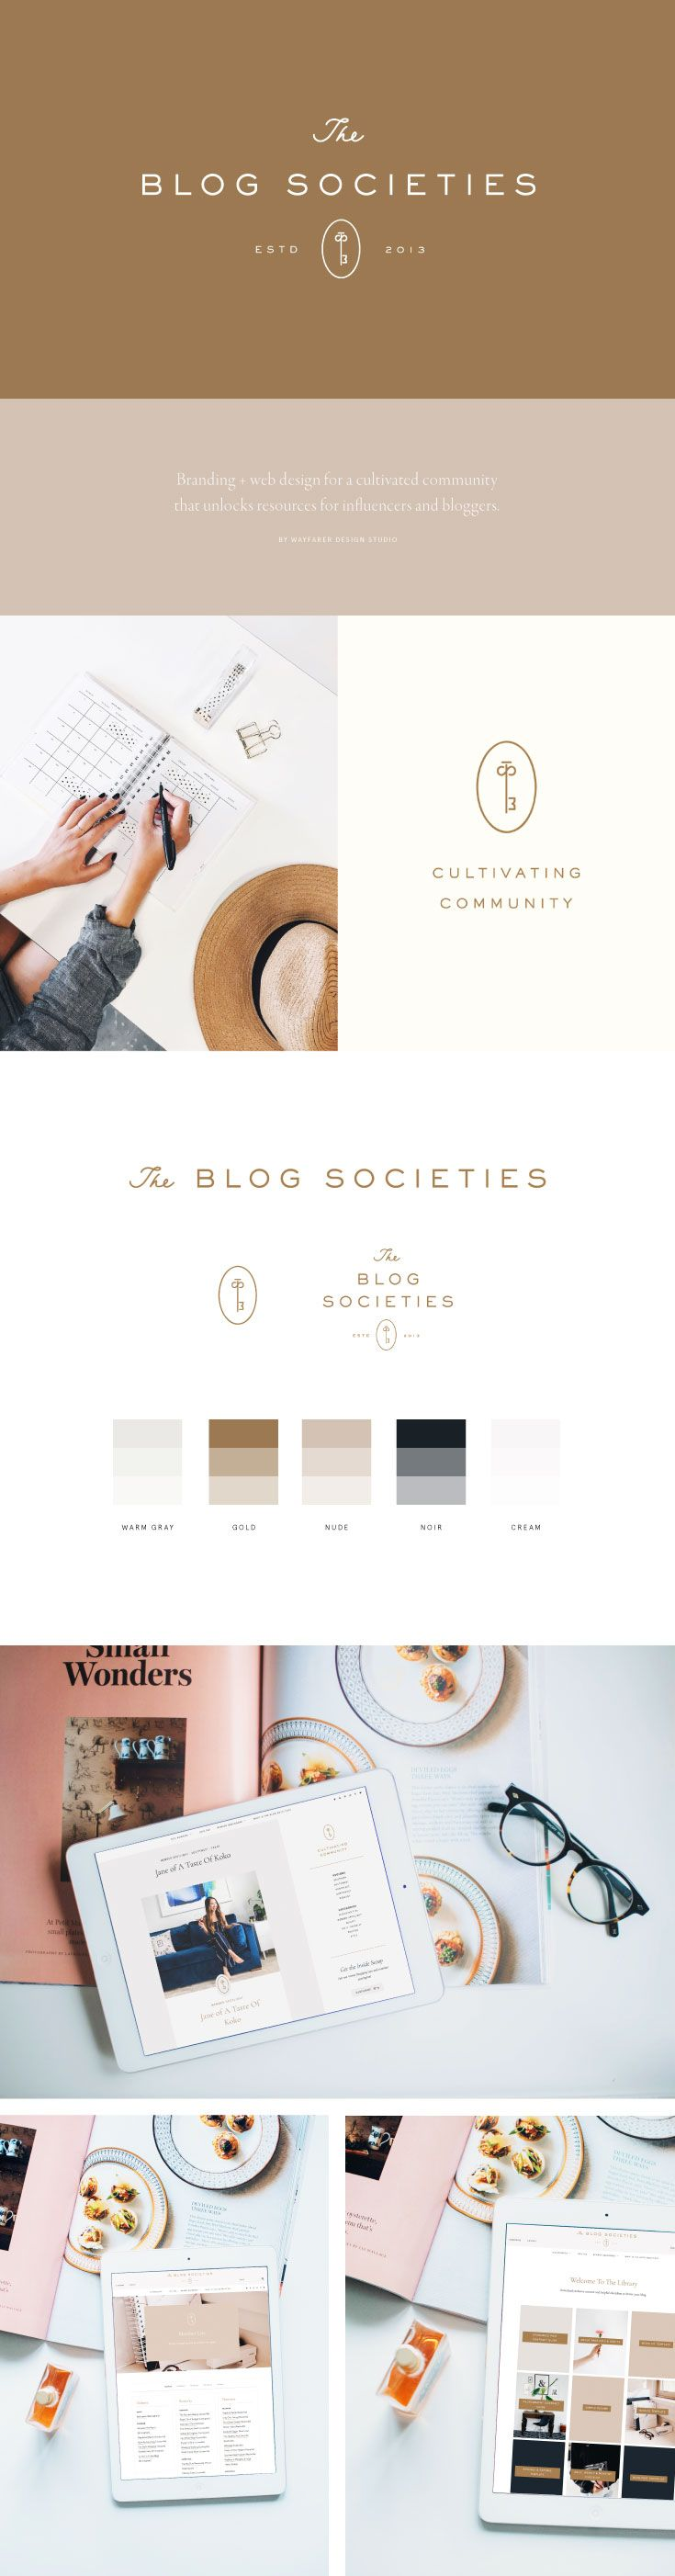 Brand + web design for The Blog Societies by Wayfarer Design Studio// design, branding, brand, brand identity, logo, logos, graphic design, identity, web, website, website design, blogger, blog design, lettering, hand lettering, blogging